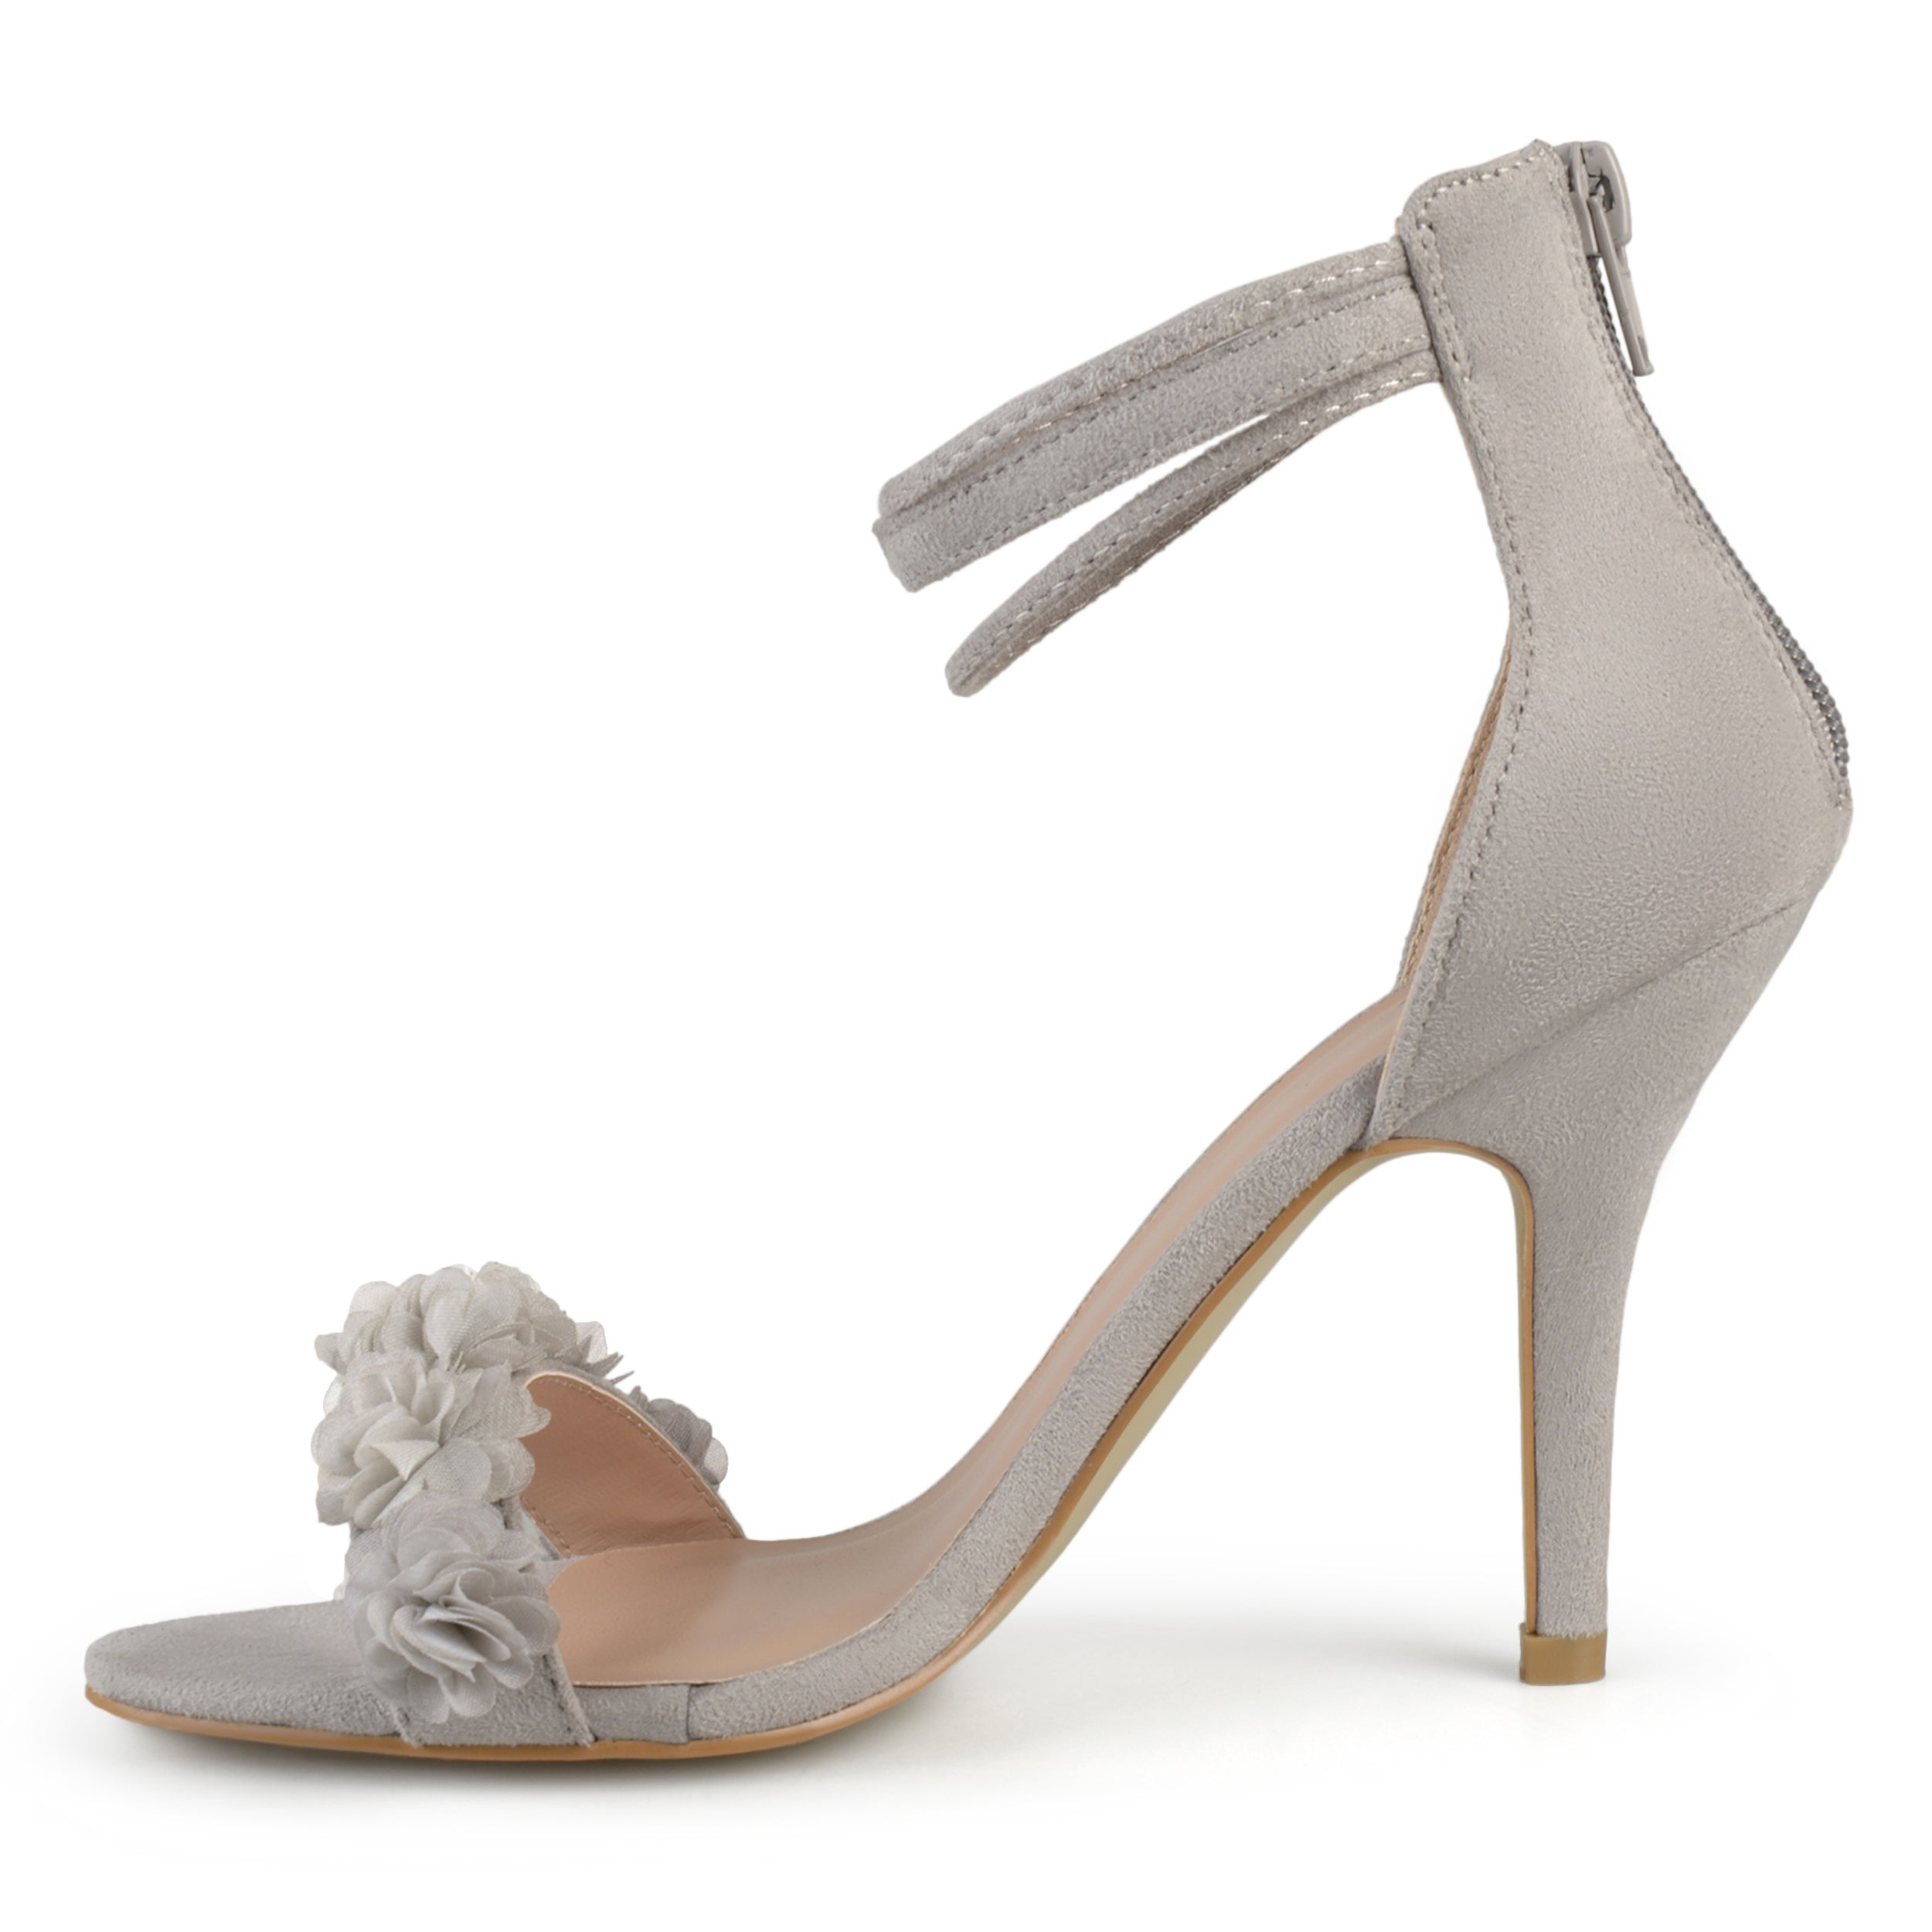 6aa57596896 Shop Journee Collection Women s  Eloise  Ankle Strap Flower High Heels -  Free Shipping On Orders Over  45 - Overstock - 15292727